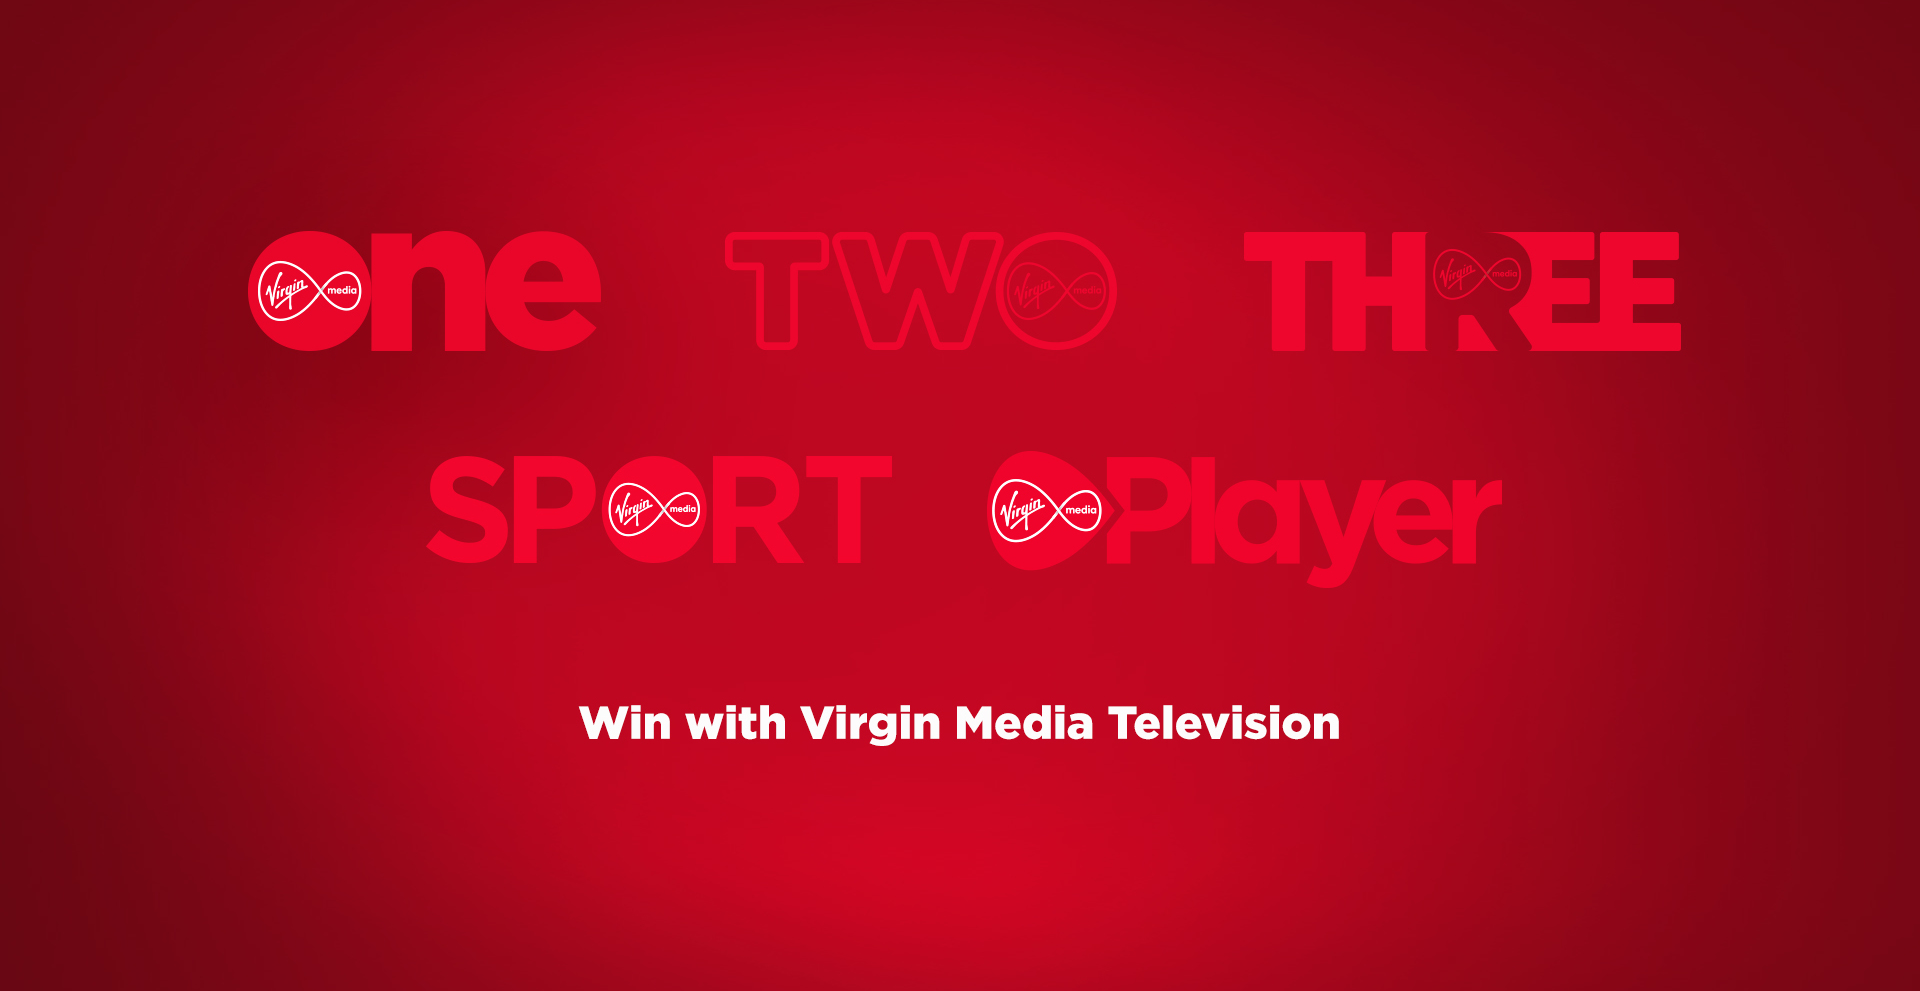 Win an overnight stay to London to see IT 2 with Warner Bros. and Virgin Media Television